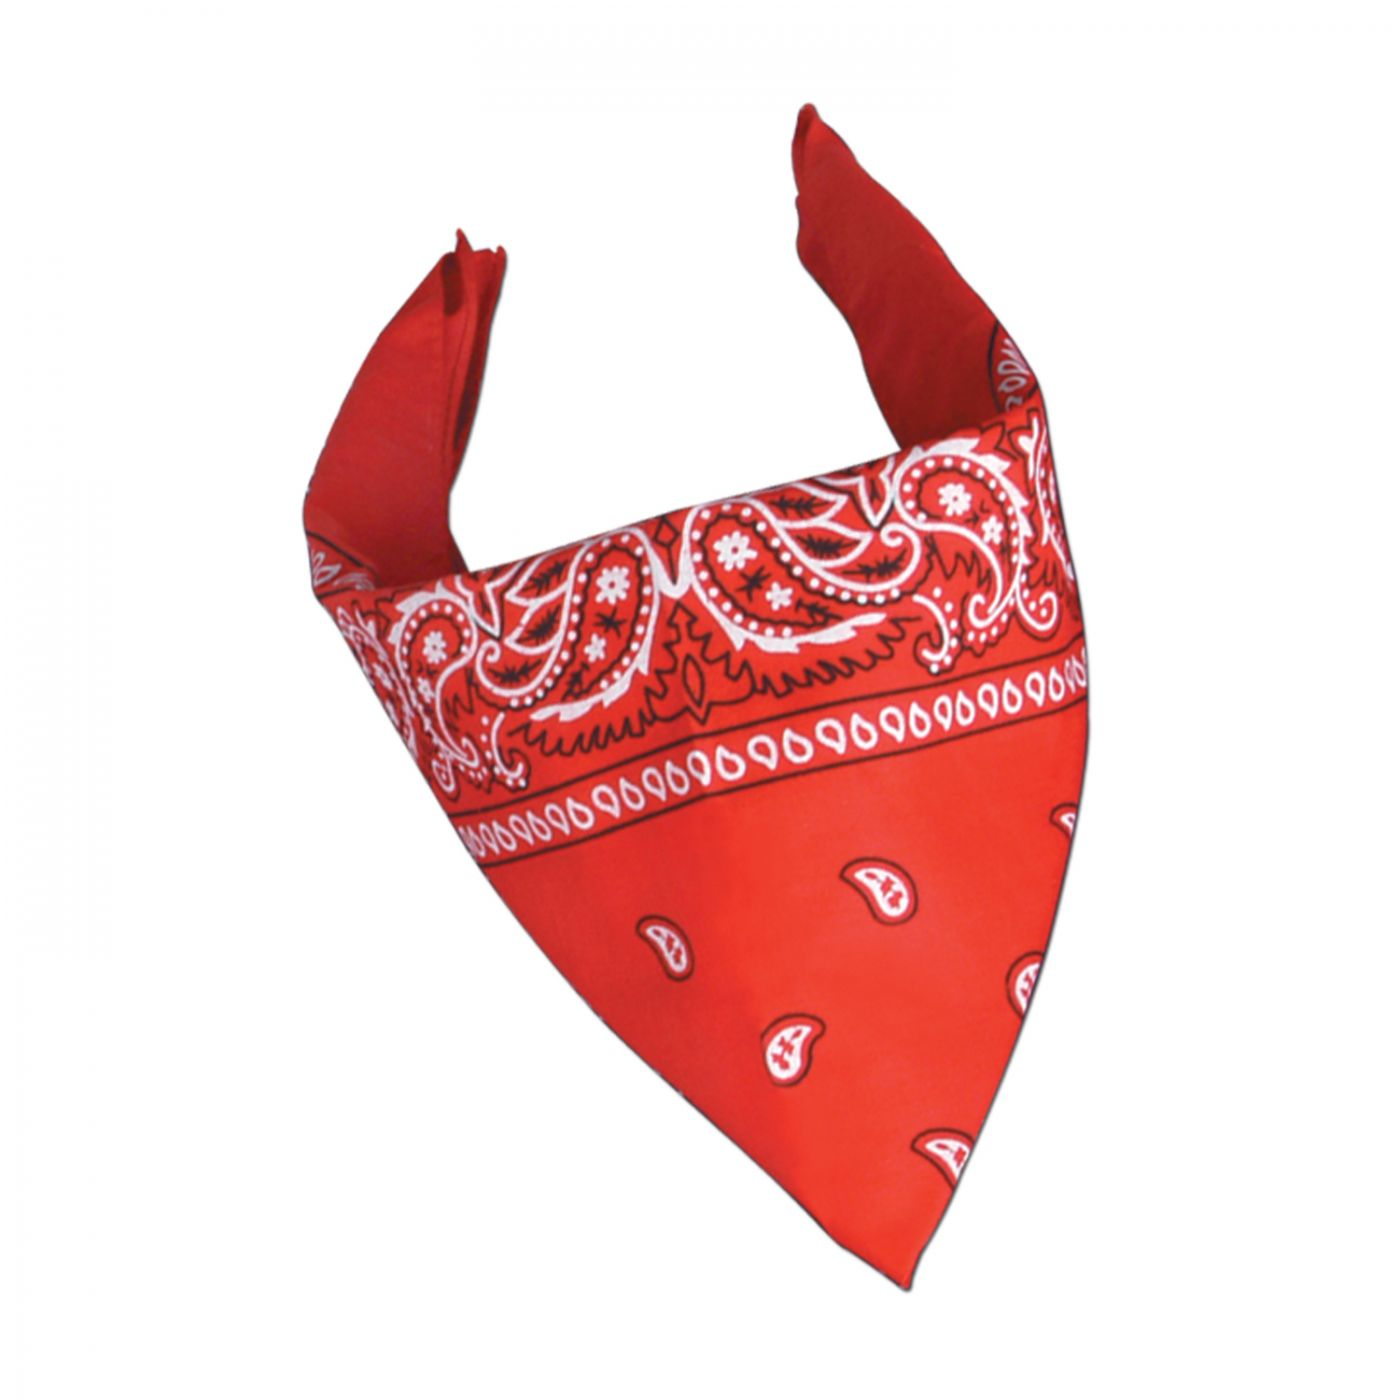 Red Bandana image